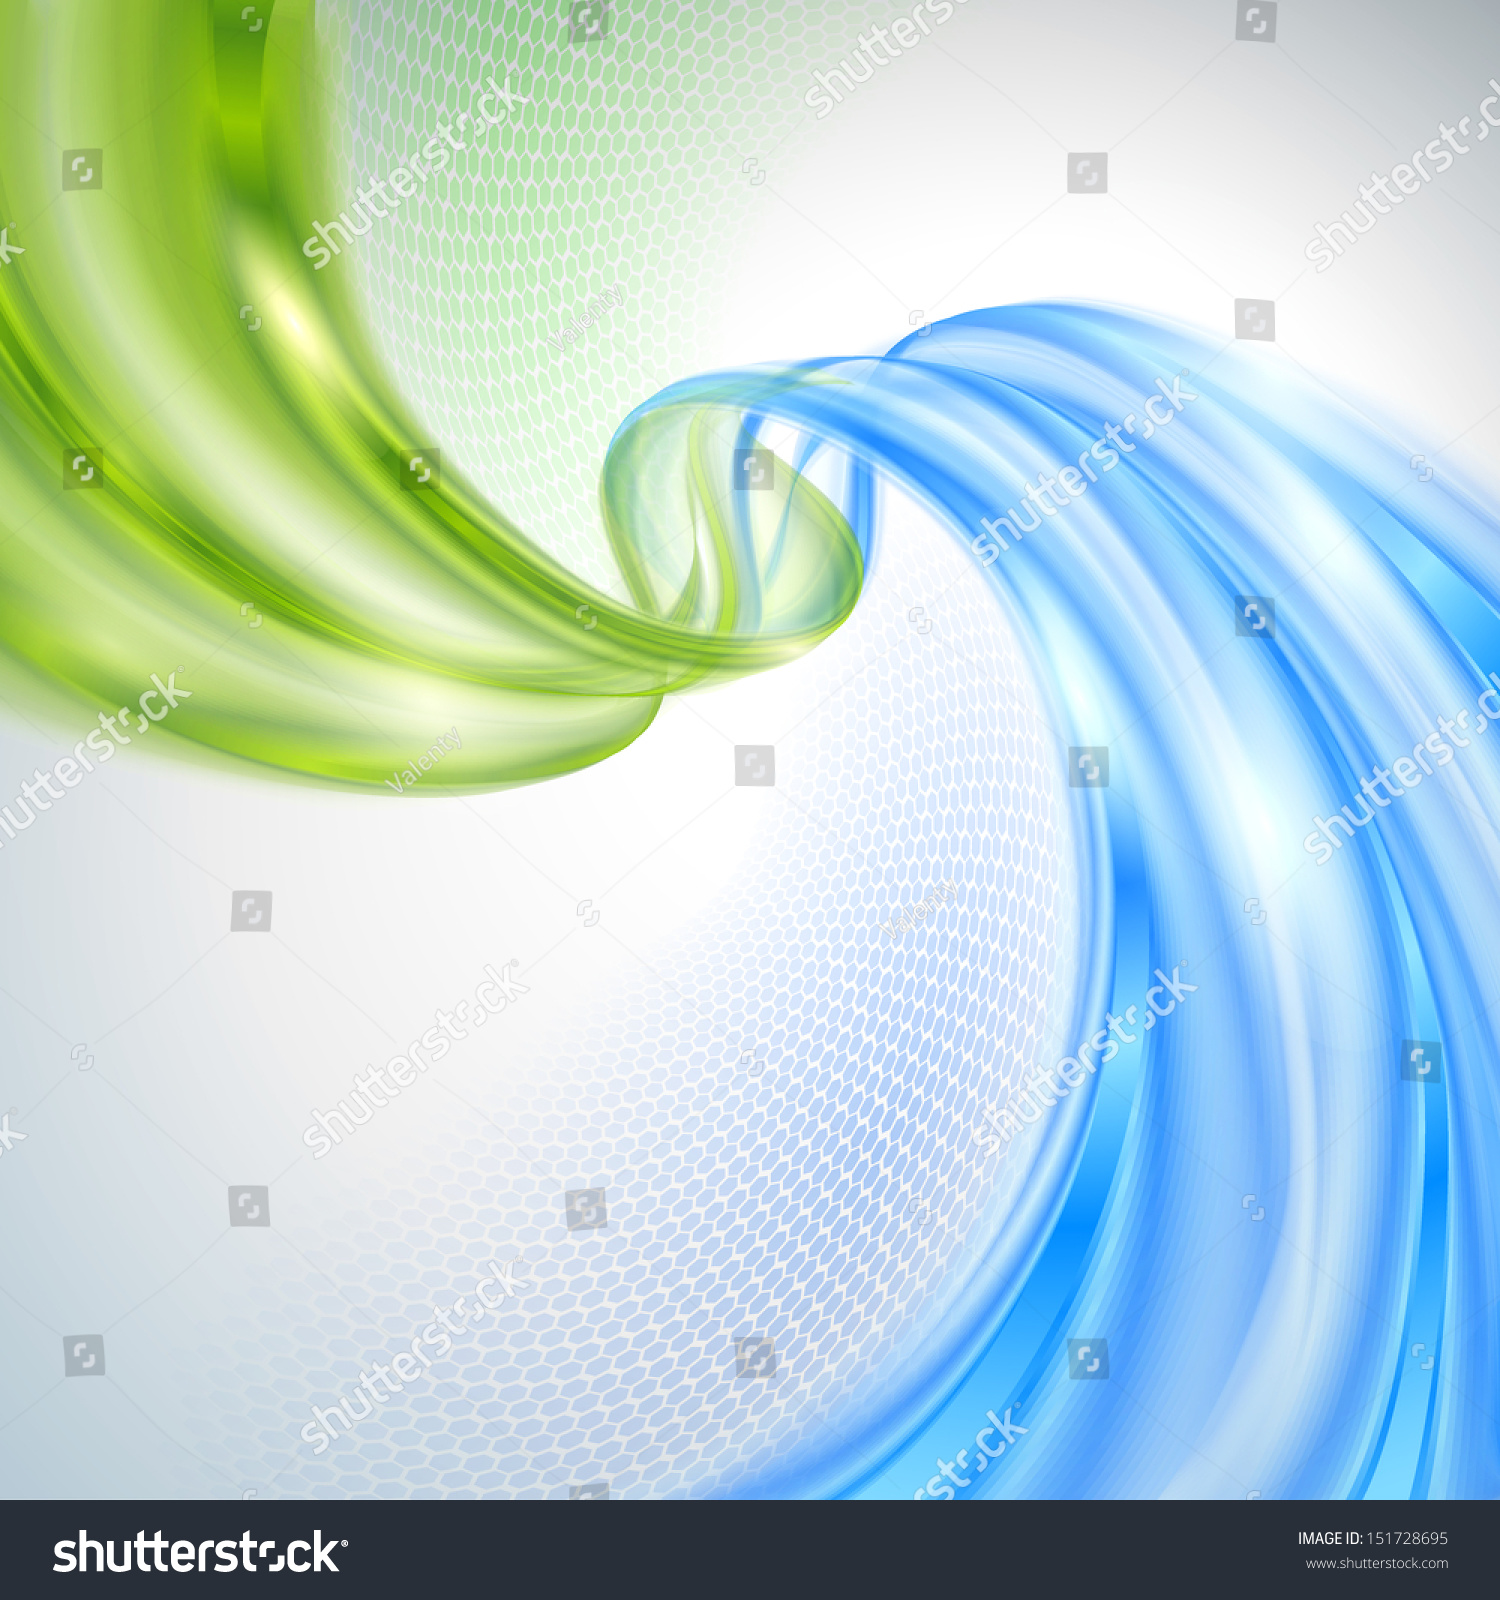 Abstract Green And Blue Wave Background Stock Vector ...